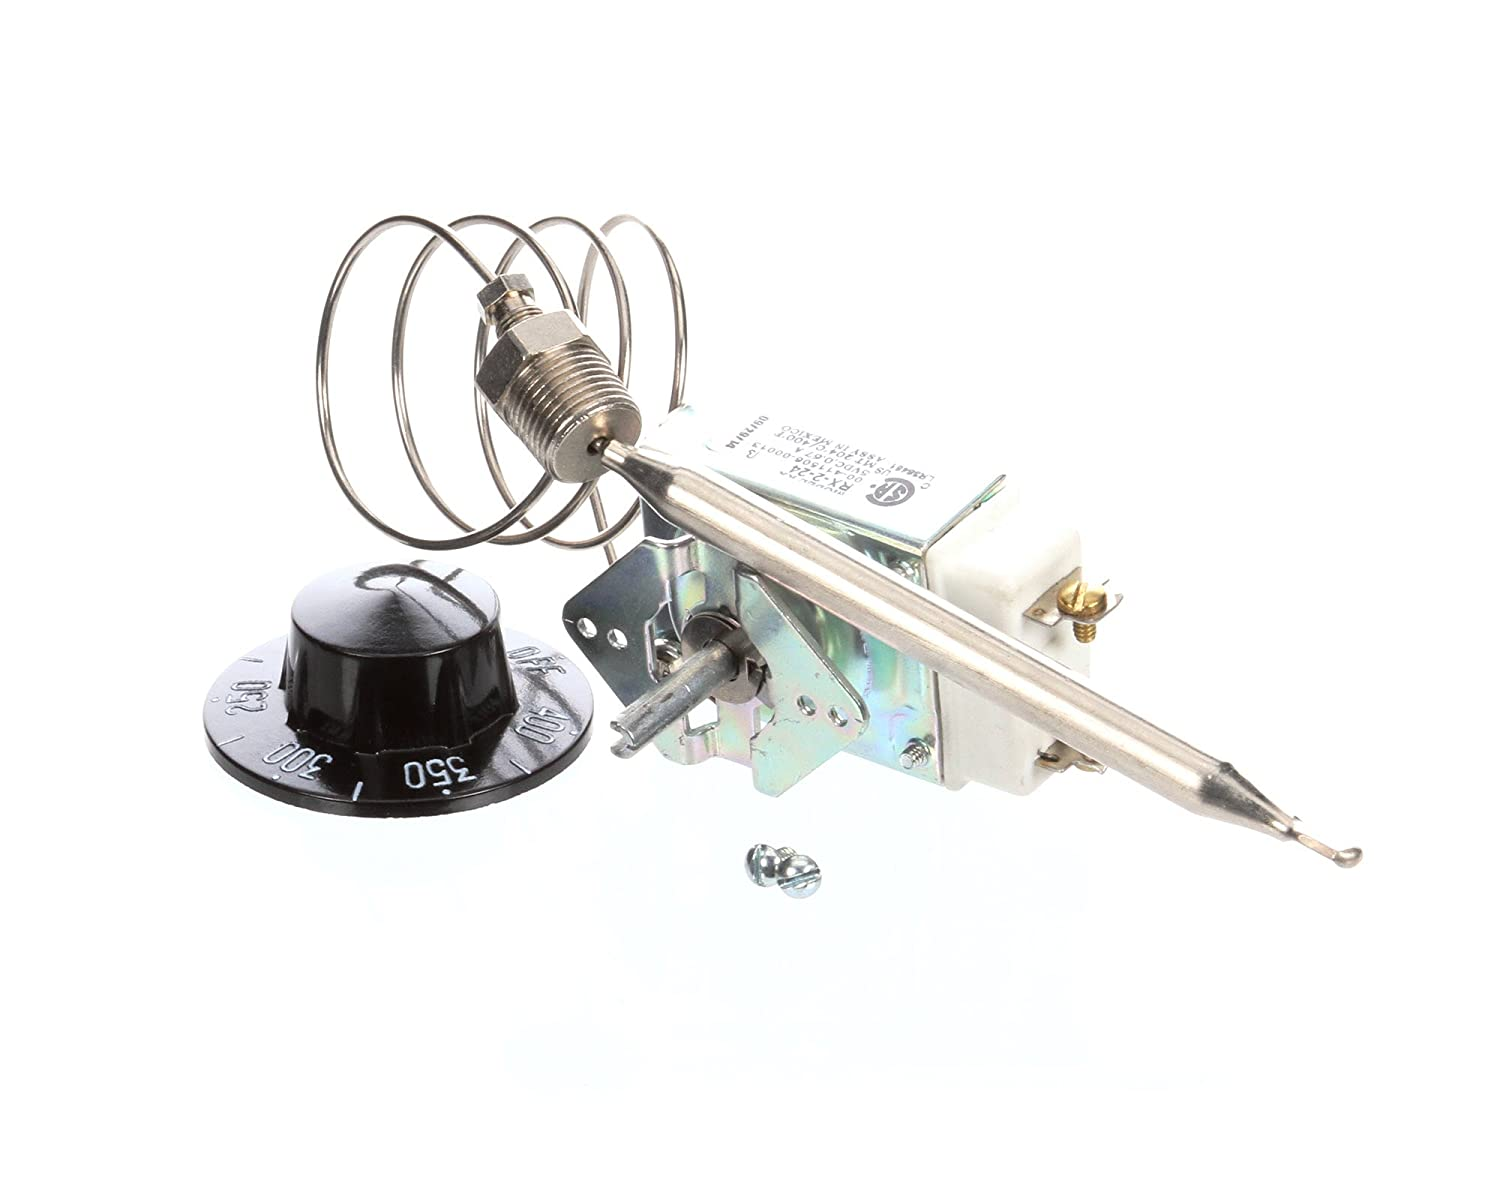 Vulcan-Hart 00-913153 Thermostat for Compatible Vulcan-Hart and Hobart Fryers